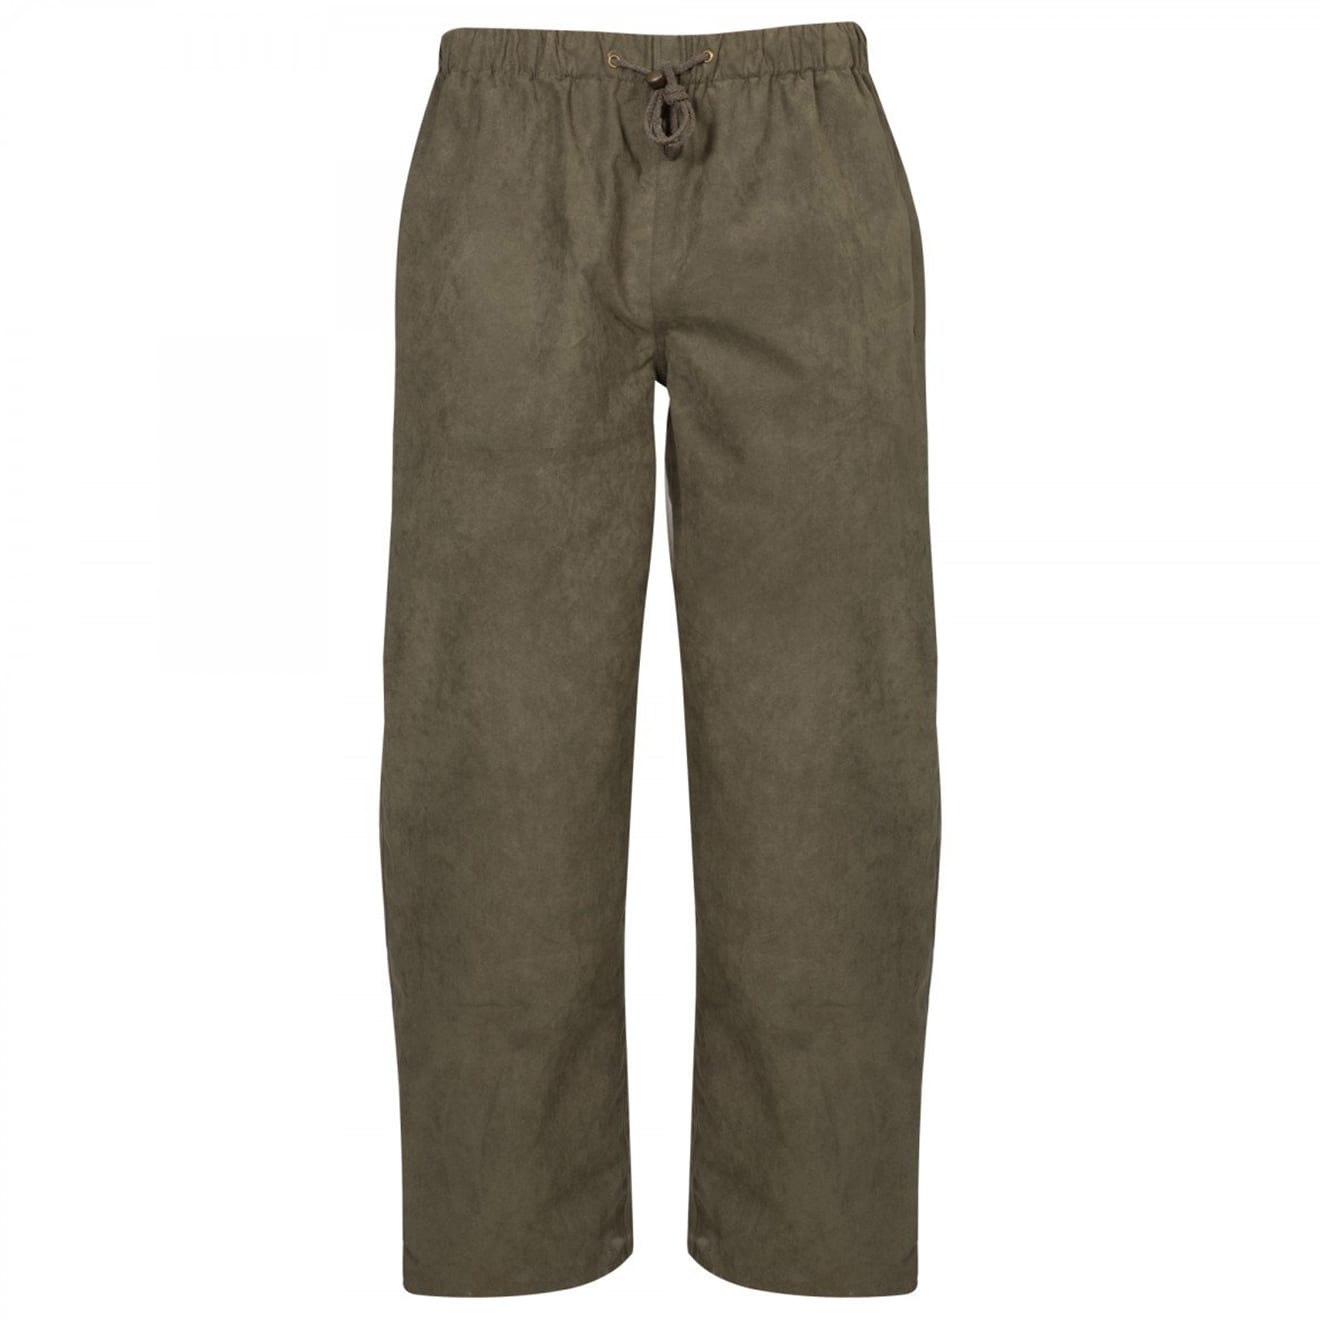 Alan Paine cambridge waterproof overtrousers olive